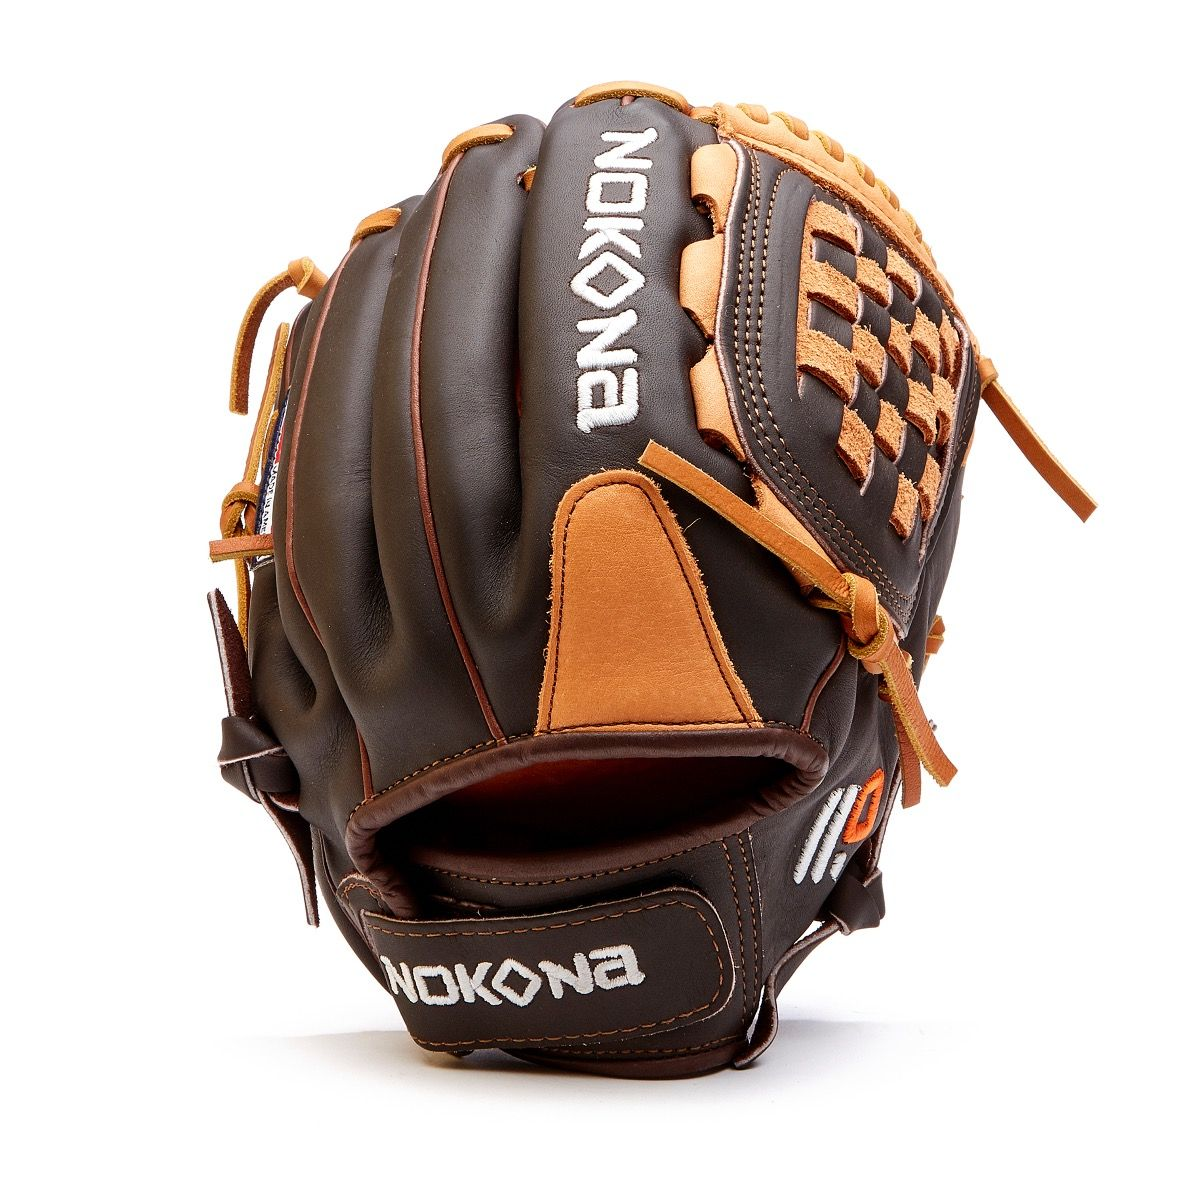 nokona-alpha-s-v1200-softball-glove-12-inch-basket-web-right-hand-throw S-V1200C-BAS-RightHandThrow   <span>The Alpha™ series is created with virtually no break-in needed and